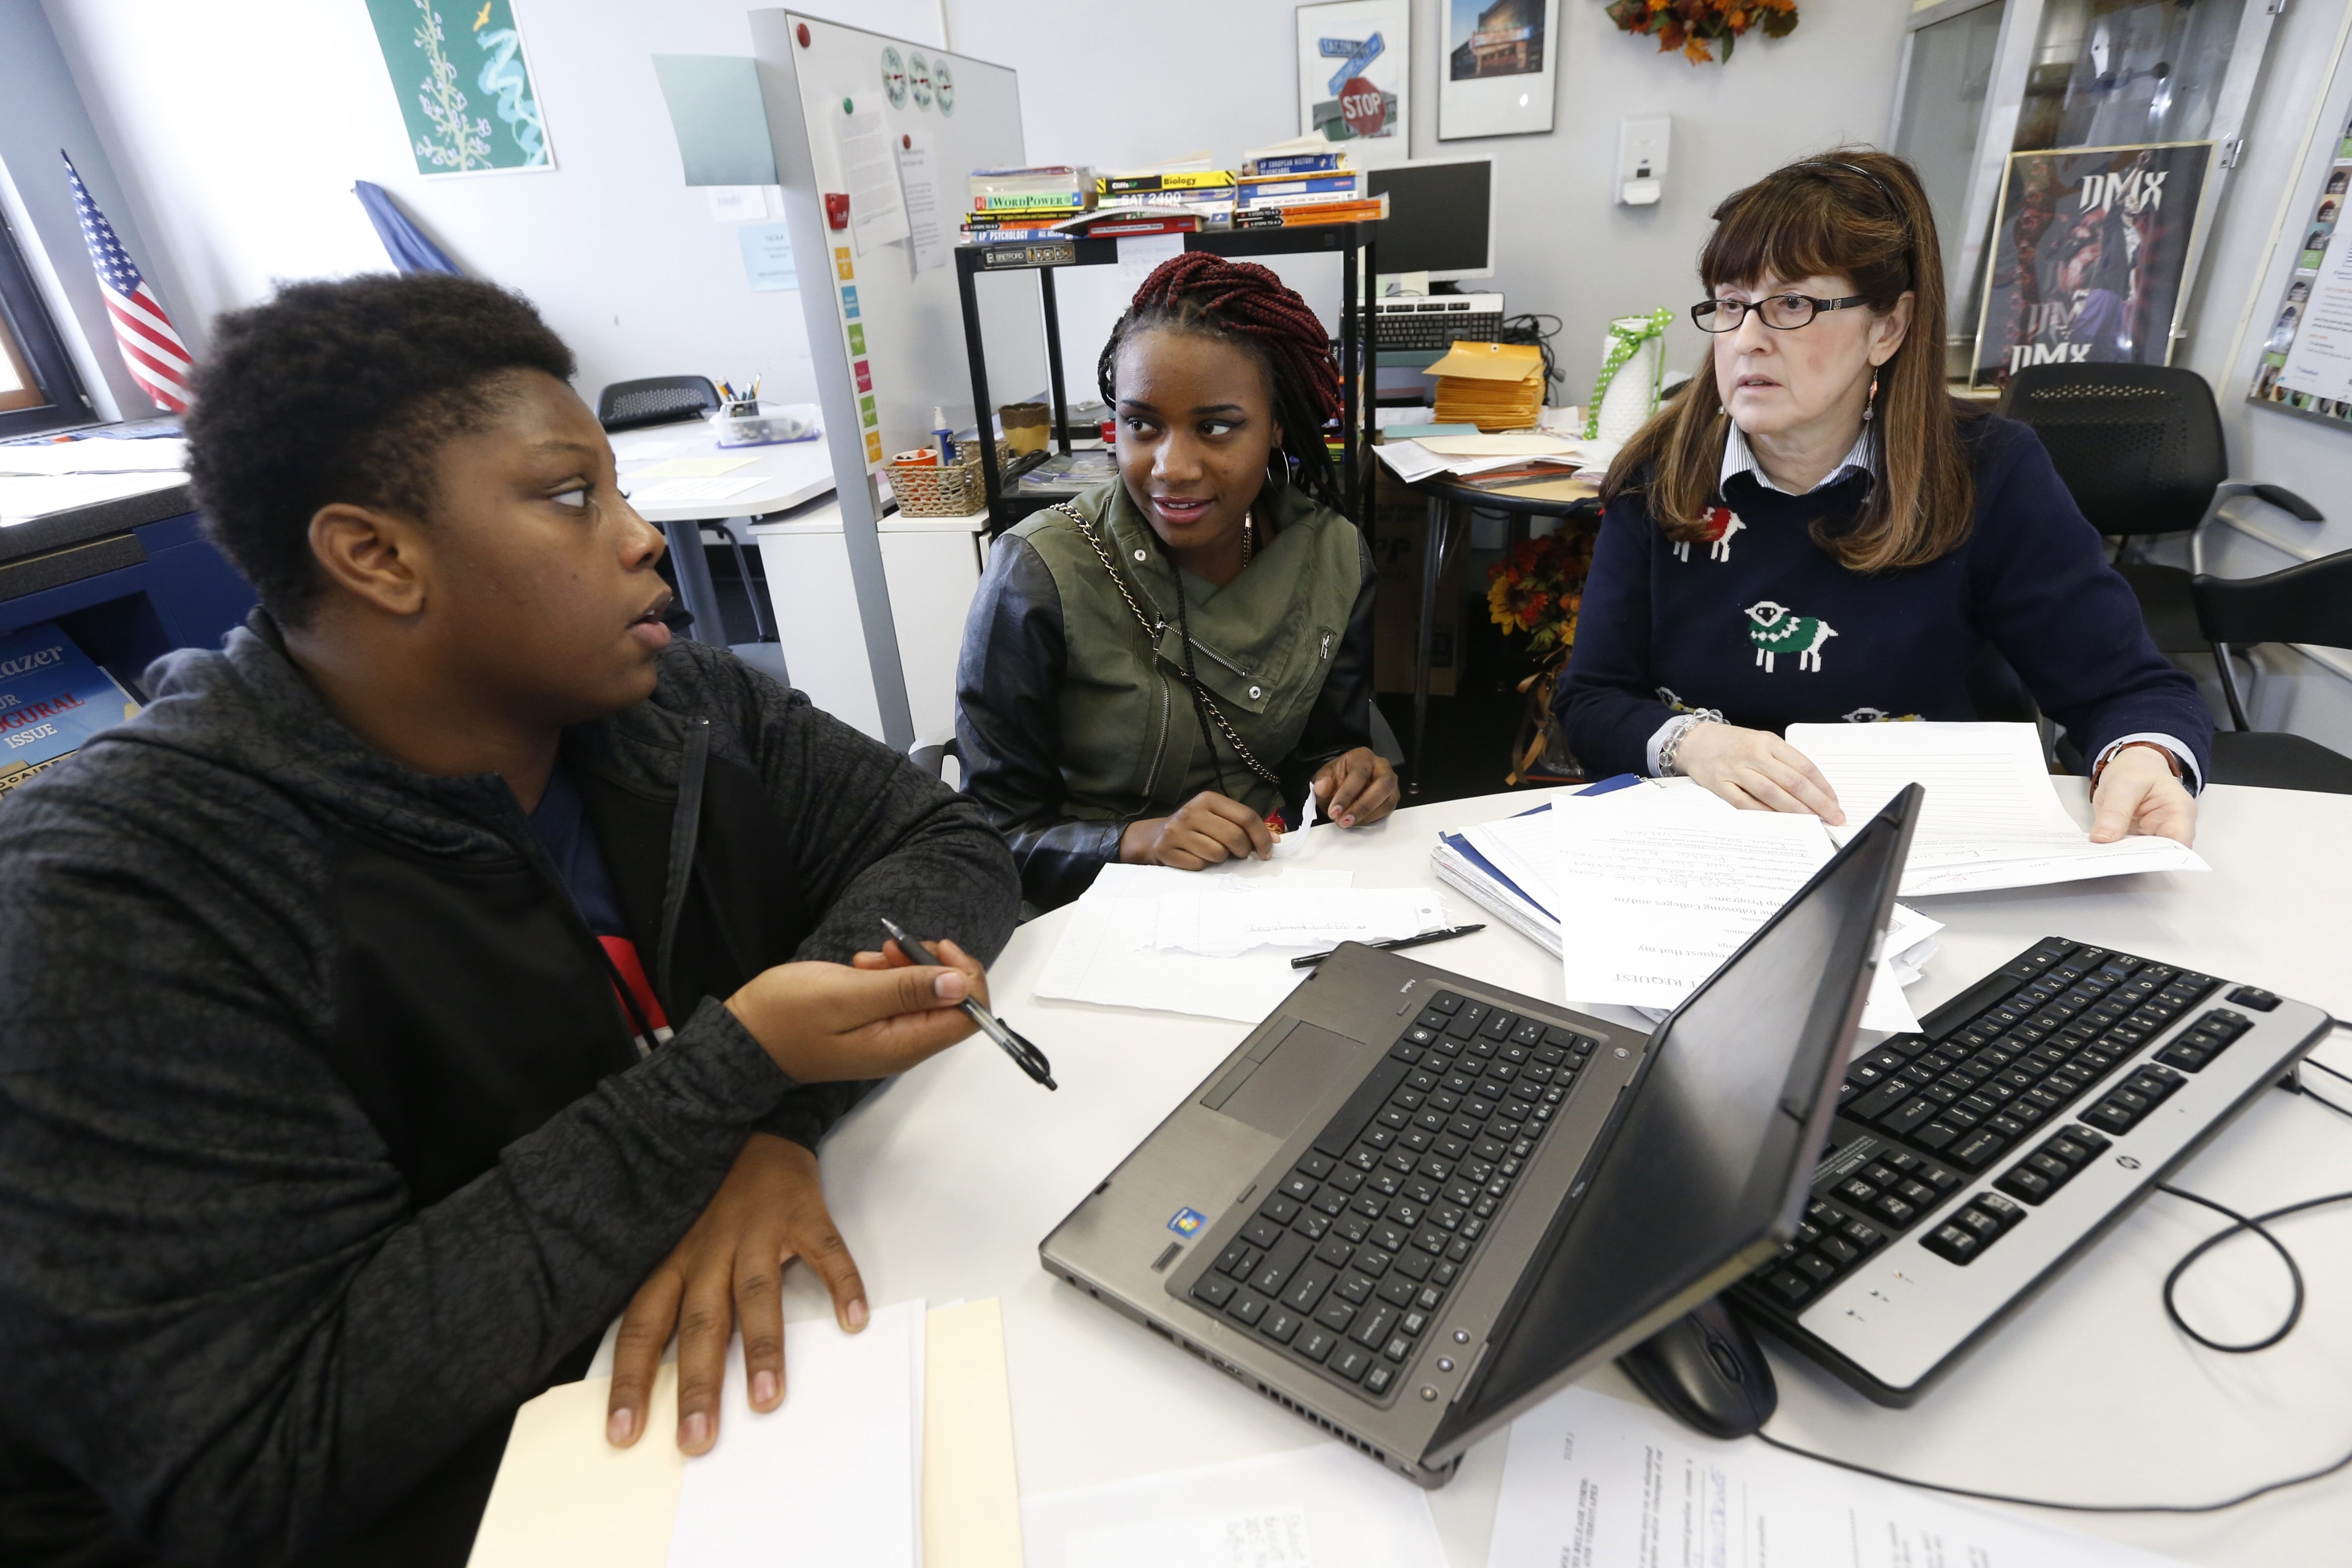 From left, Bennett High School seniors Eugene Steele and Shaniyah Crump discuss the college application progress with school counselor Maureen England in the College Success Center.